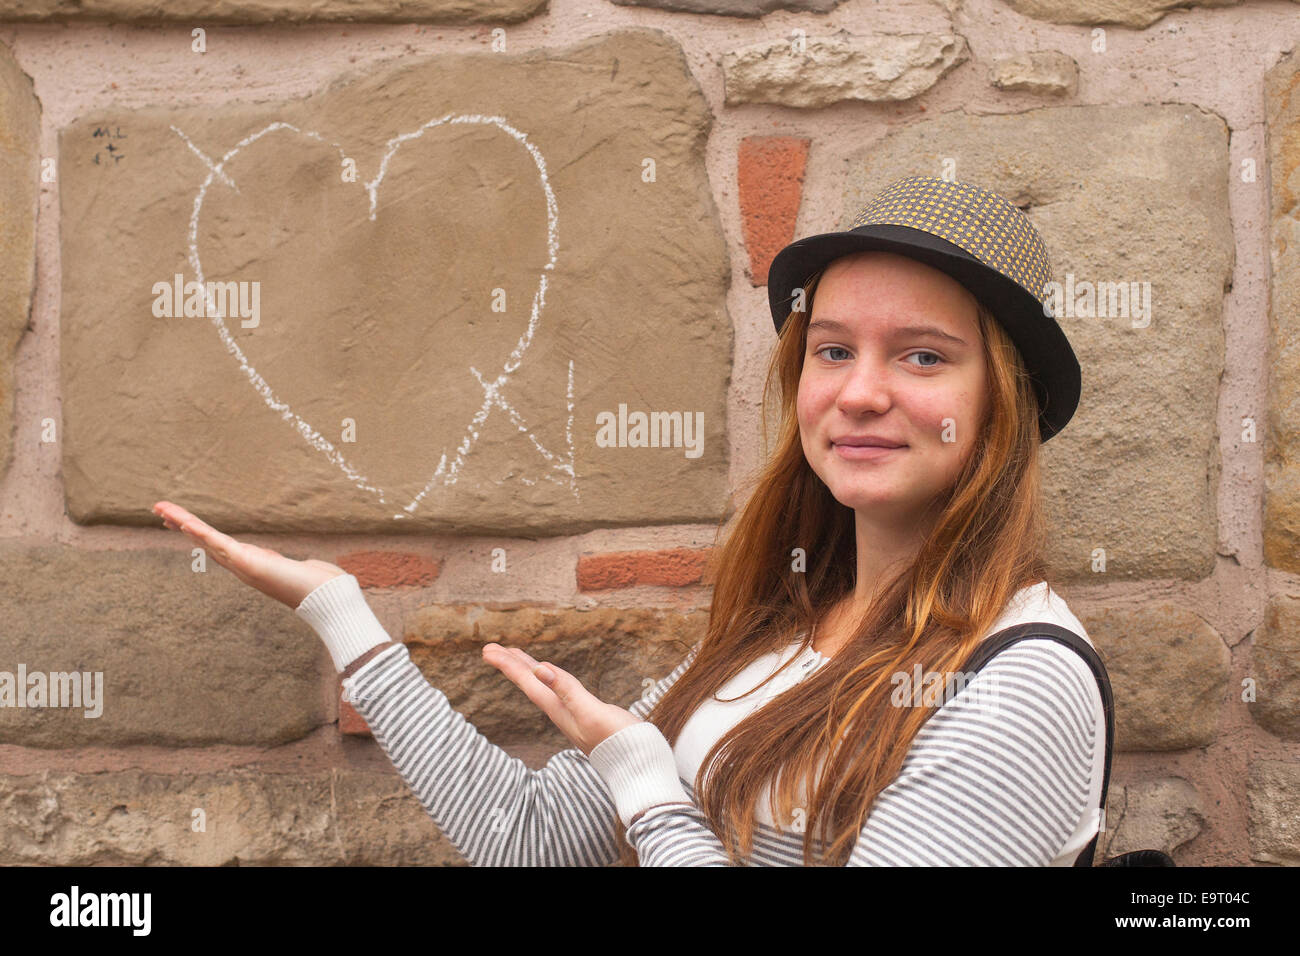 Cute young girl near a wall painted chalk heart and arrow. Falling in love concept. Stock Photo